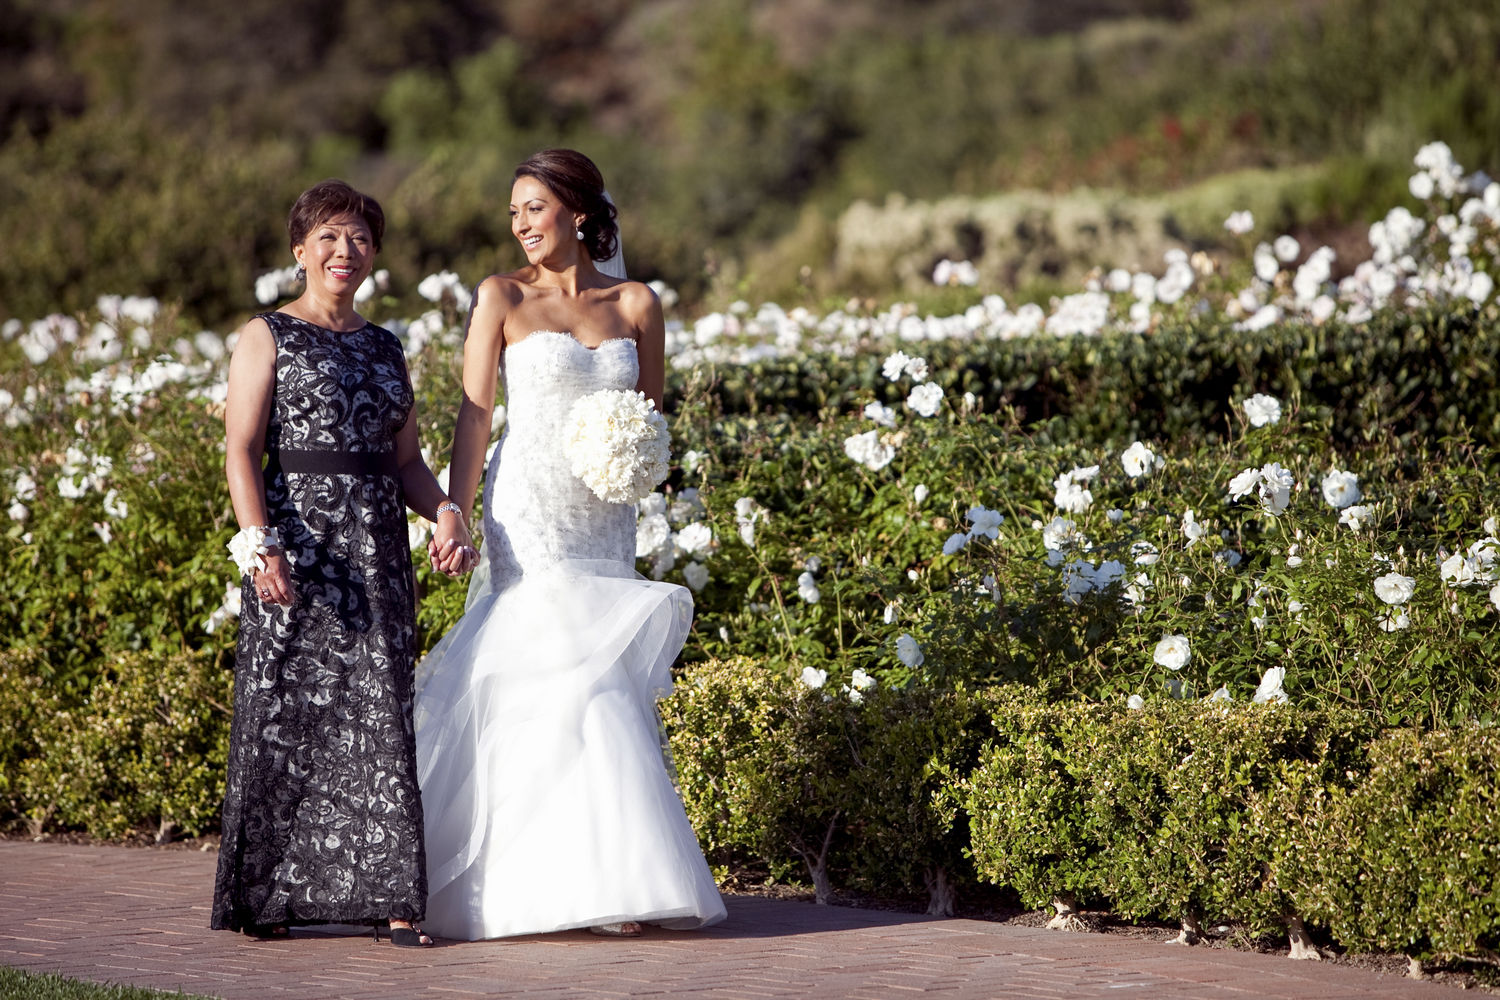 wedding-pelican-hill-resort-jindy-tilmann-141.jpg